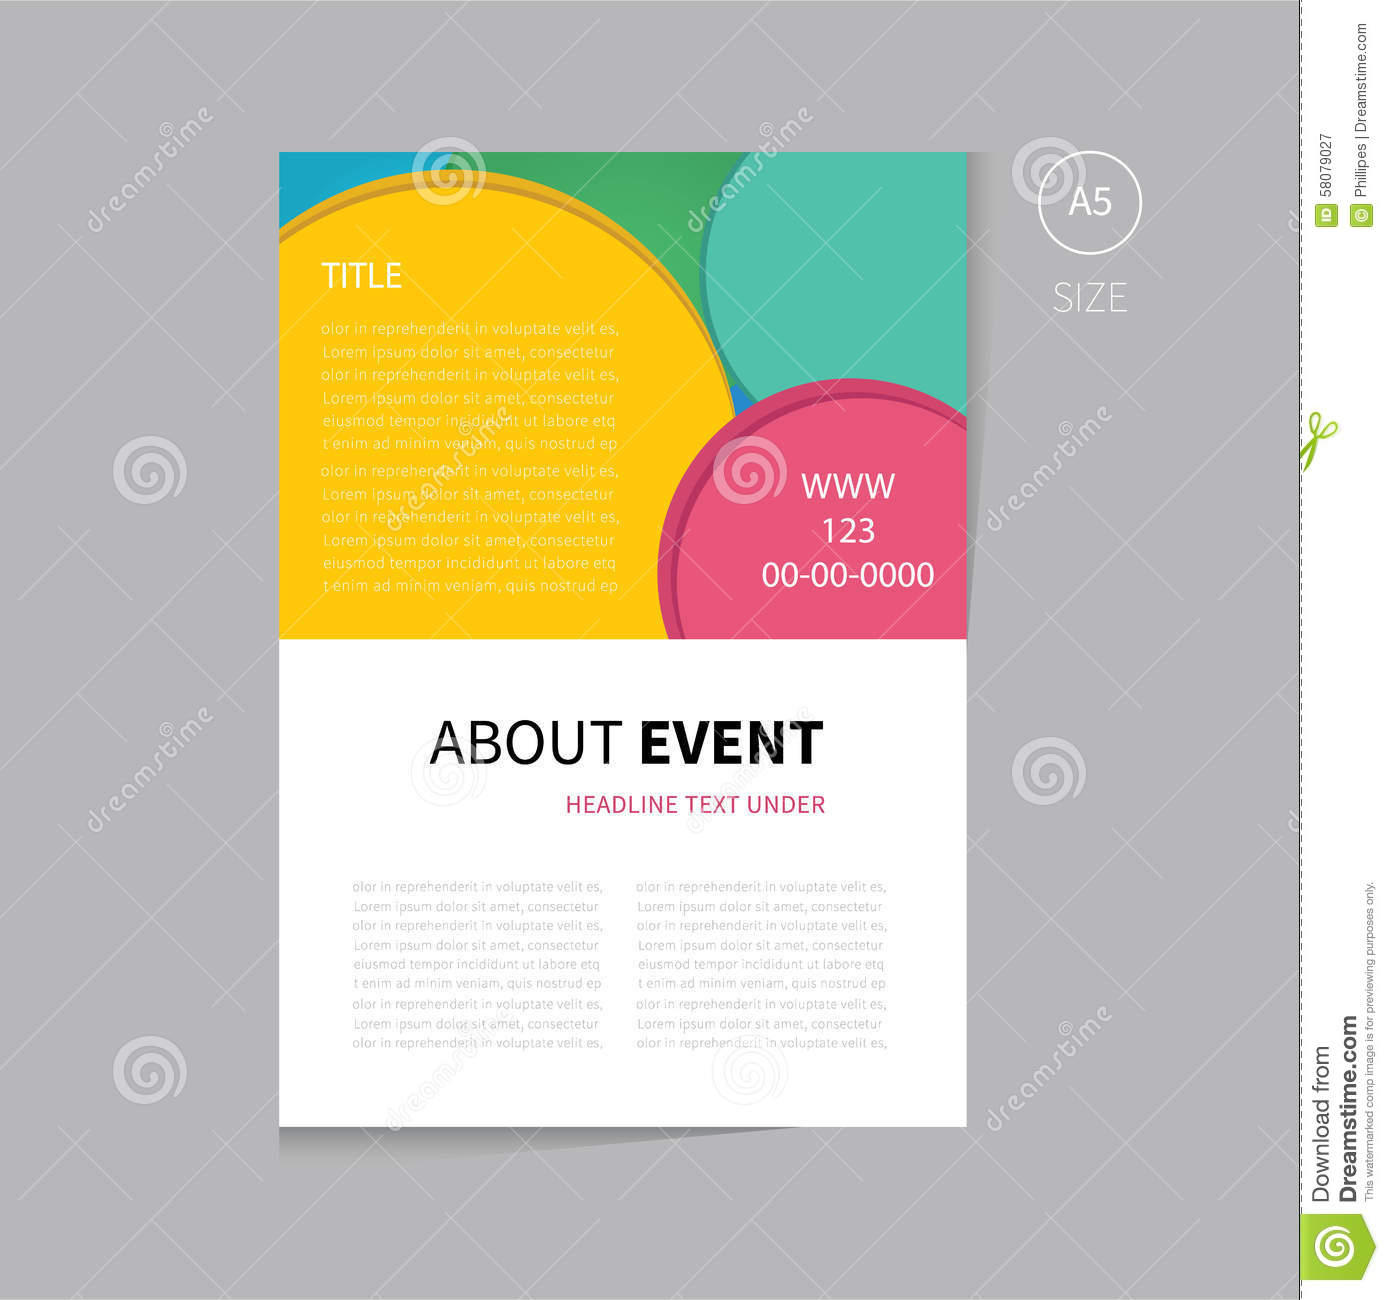 Vector Event Brochure Template Design Vector Image 58079027 – Event Brochure Template